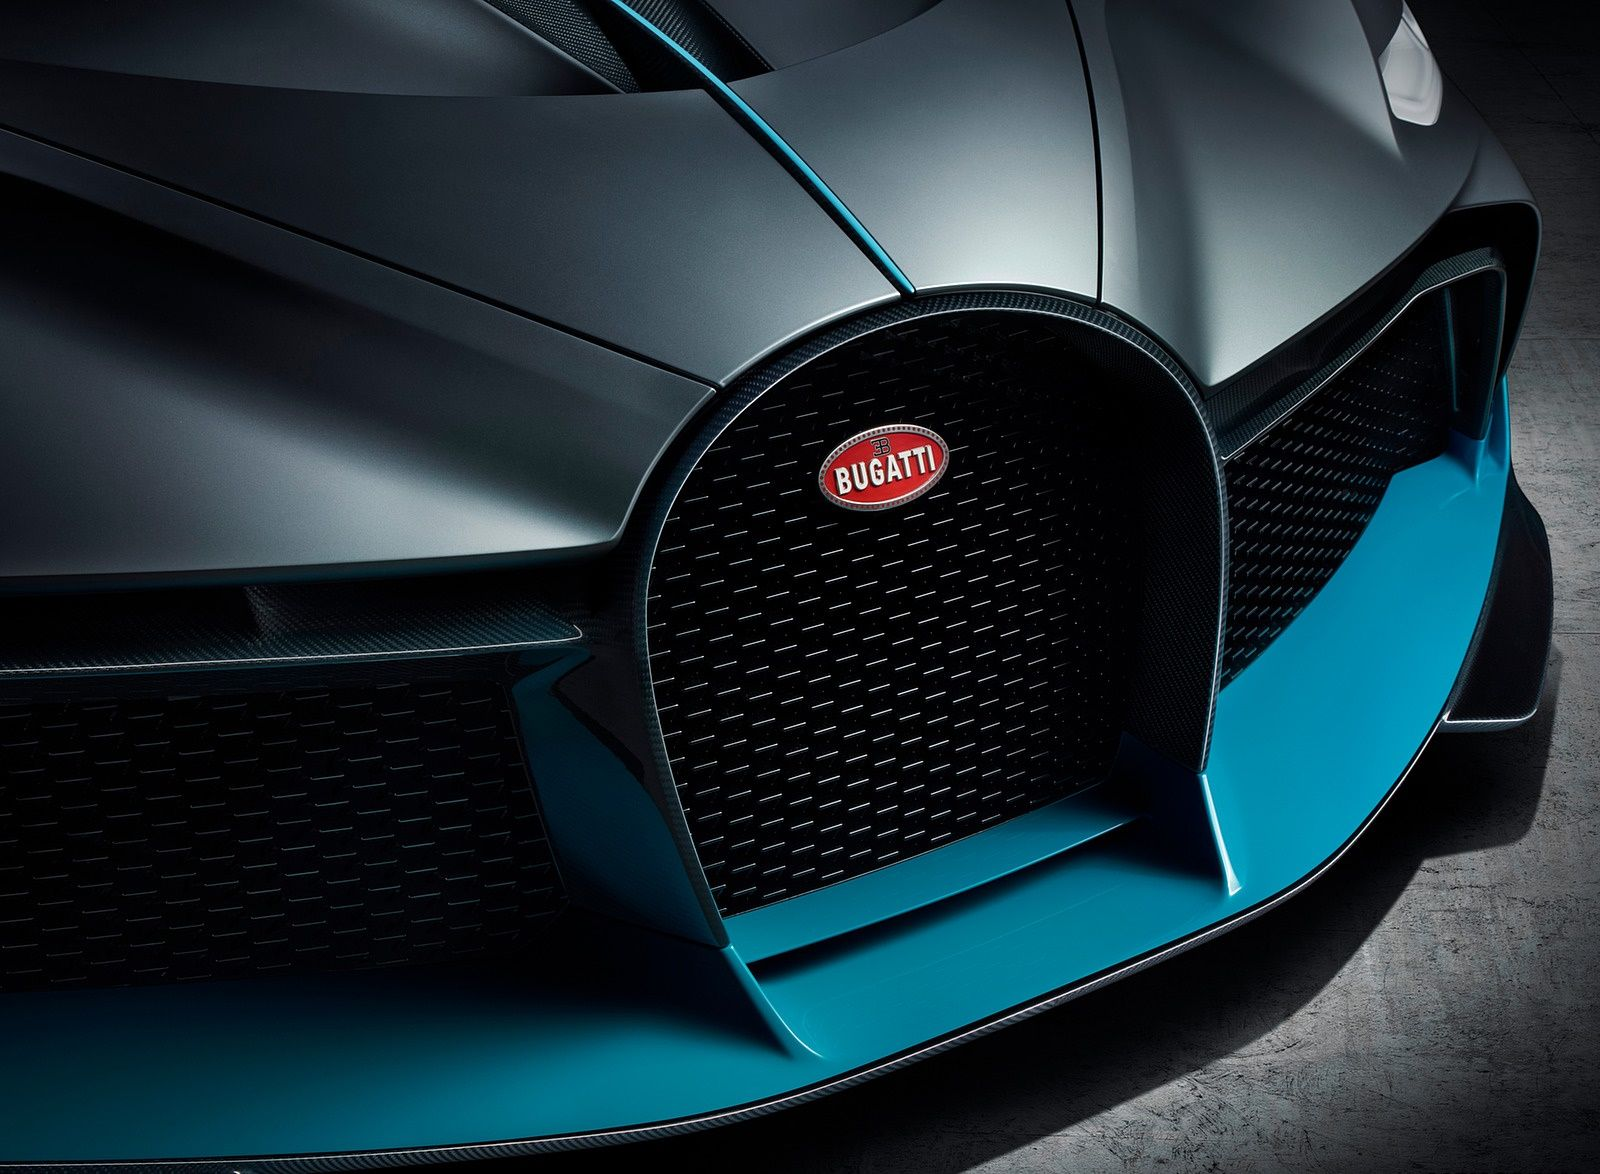 Bugatti Divo Wallpapers Top Free Bugatti Divo Backgrounds Wallpaperaccess